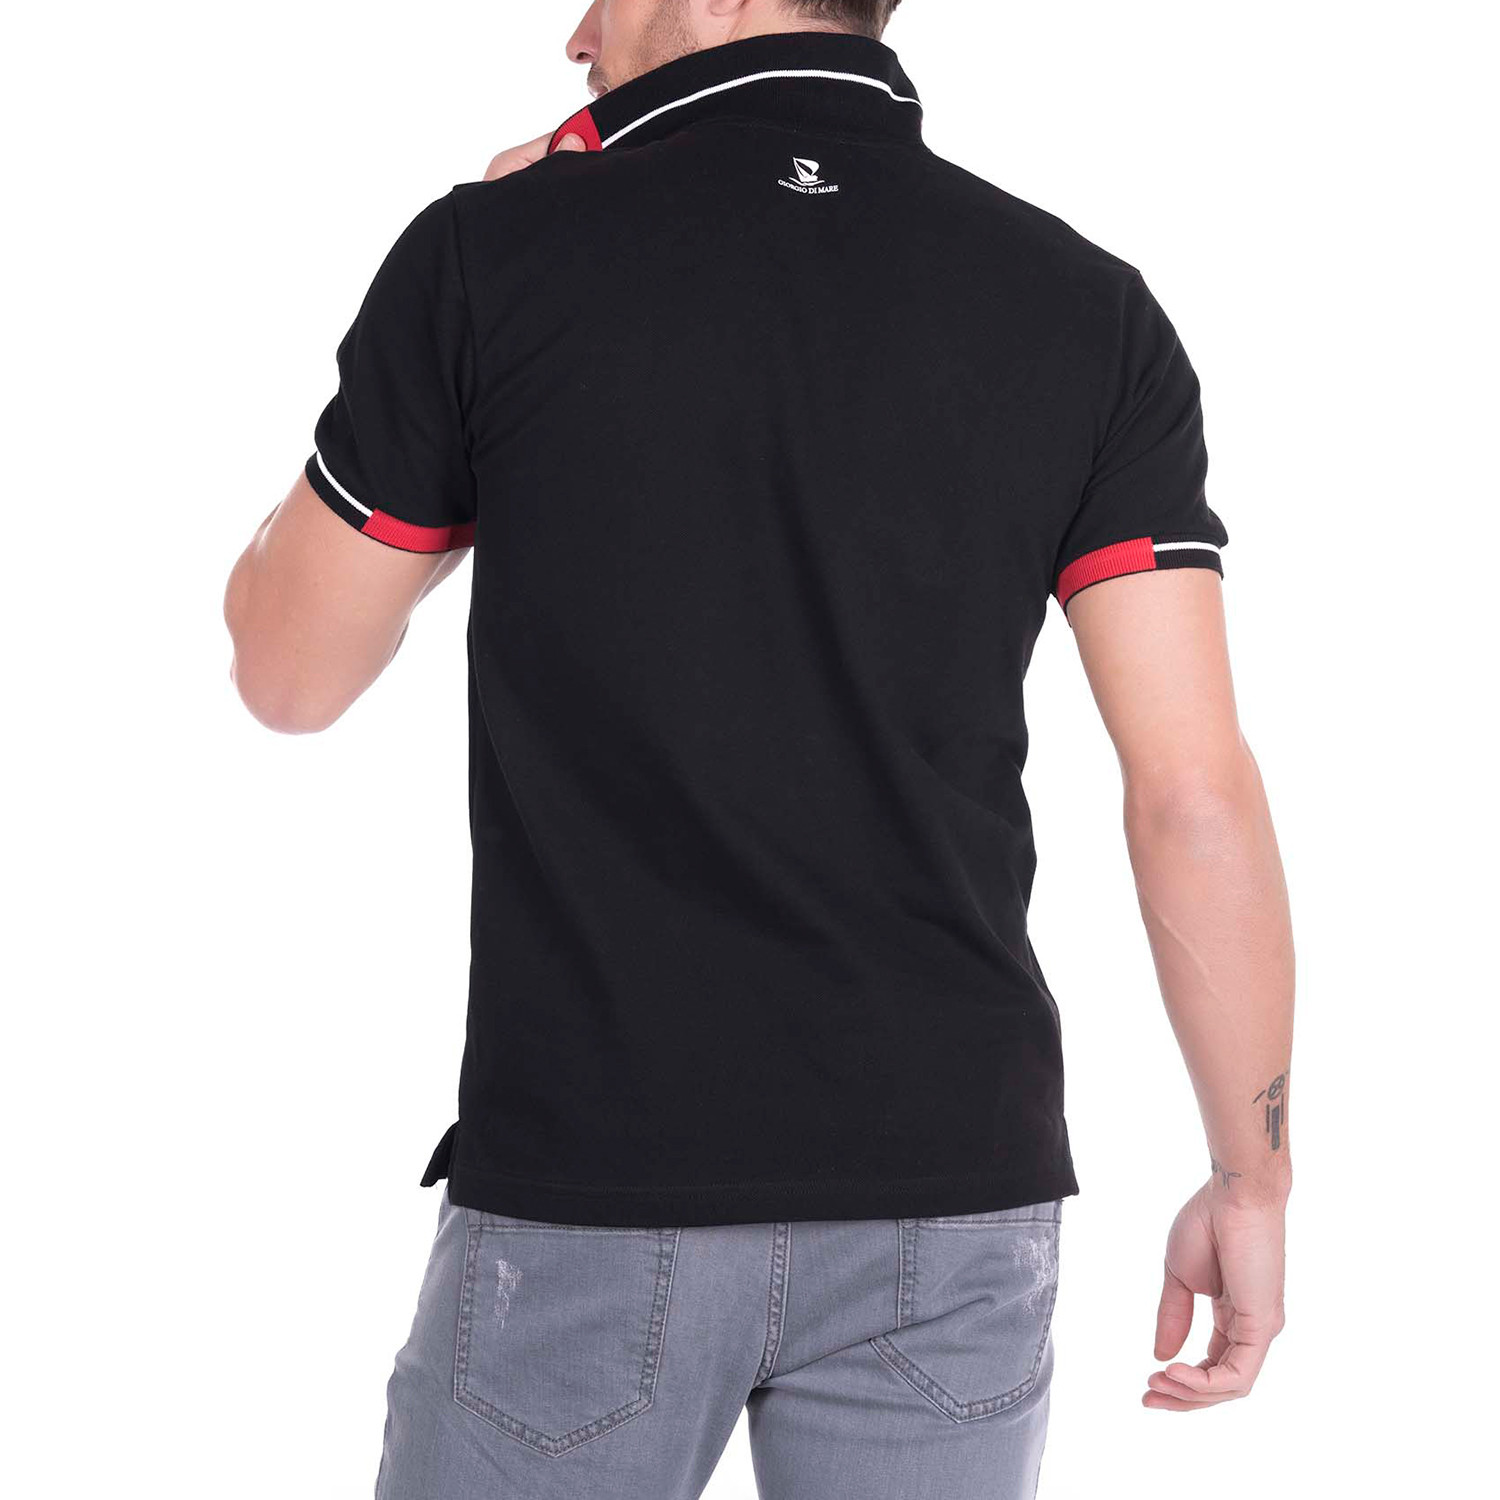 Smith Polo Shirt Black S Giorgio Di Mare Touch Of Modern